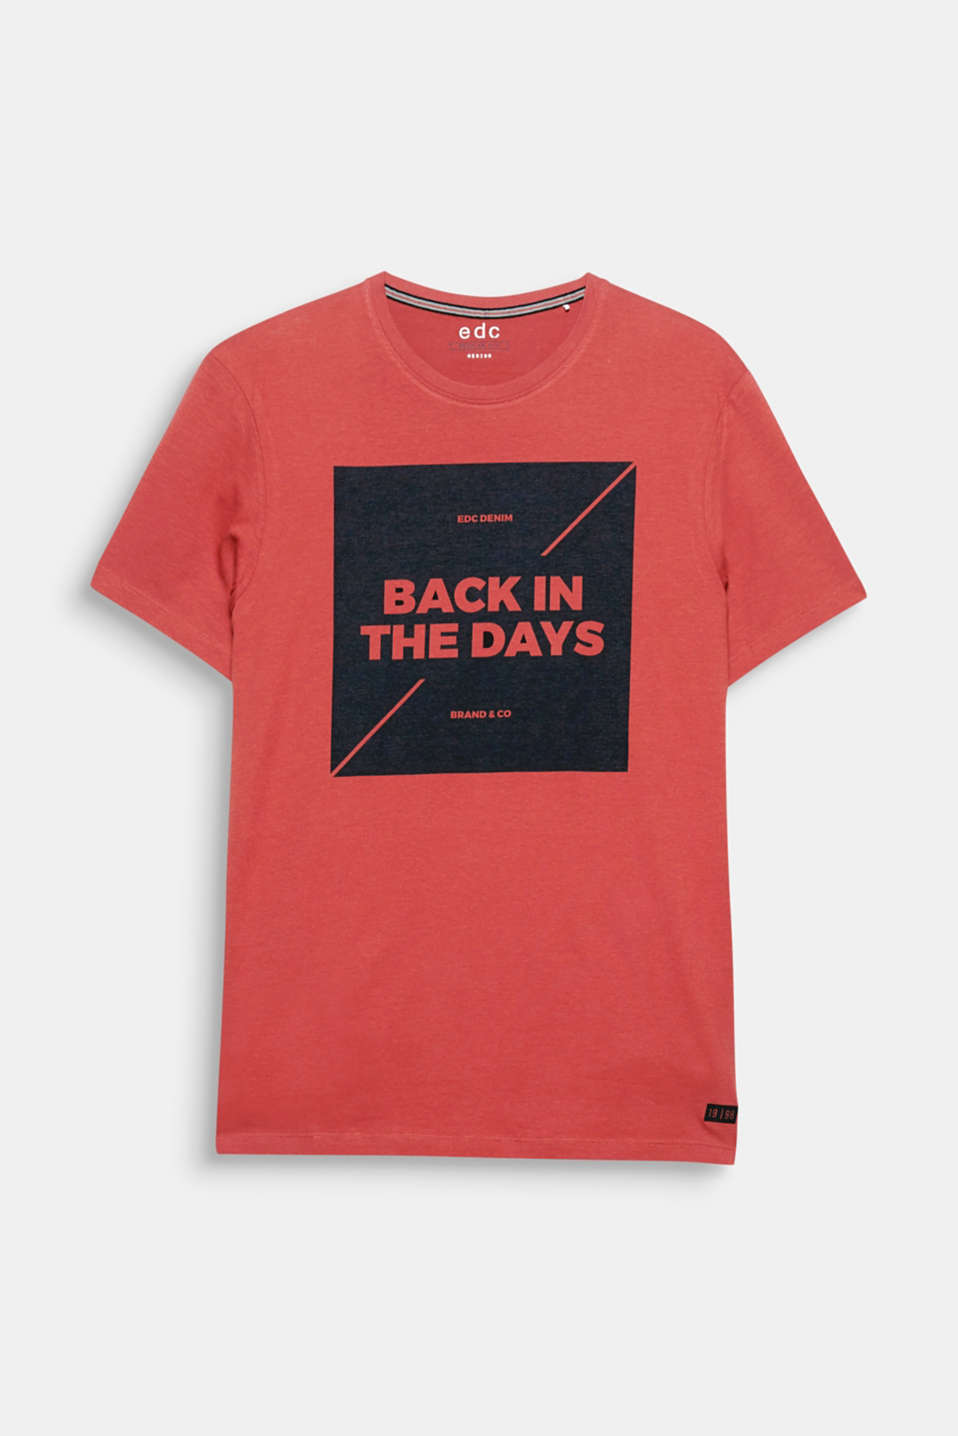 Back in the days! The tone-in-tone, printed slogan makes this T-shirt look mega modern.